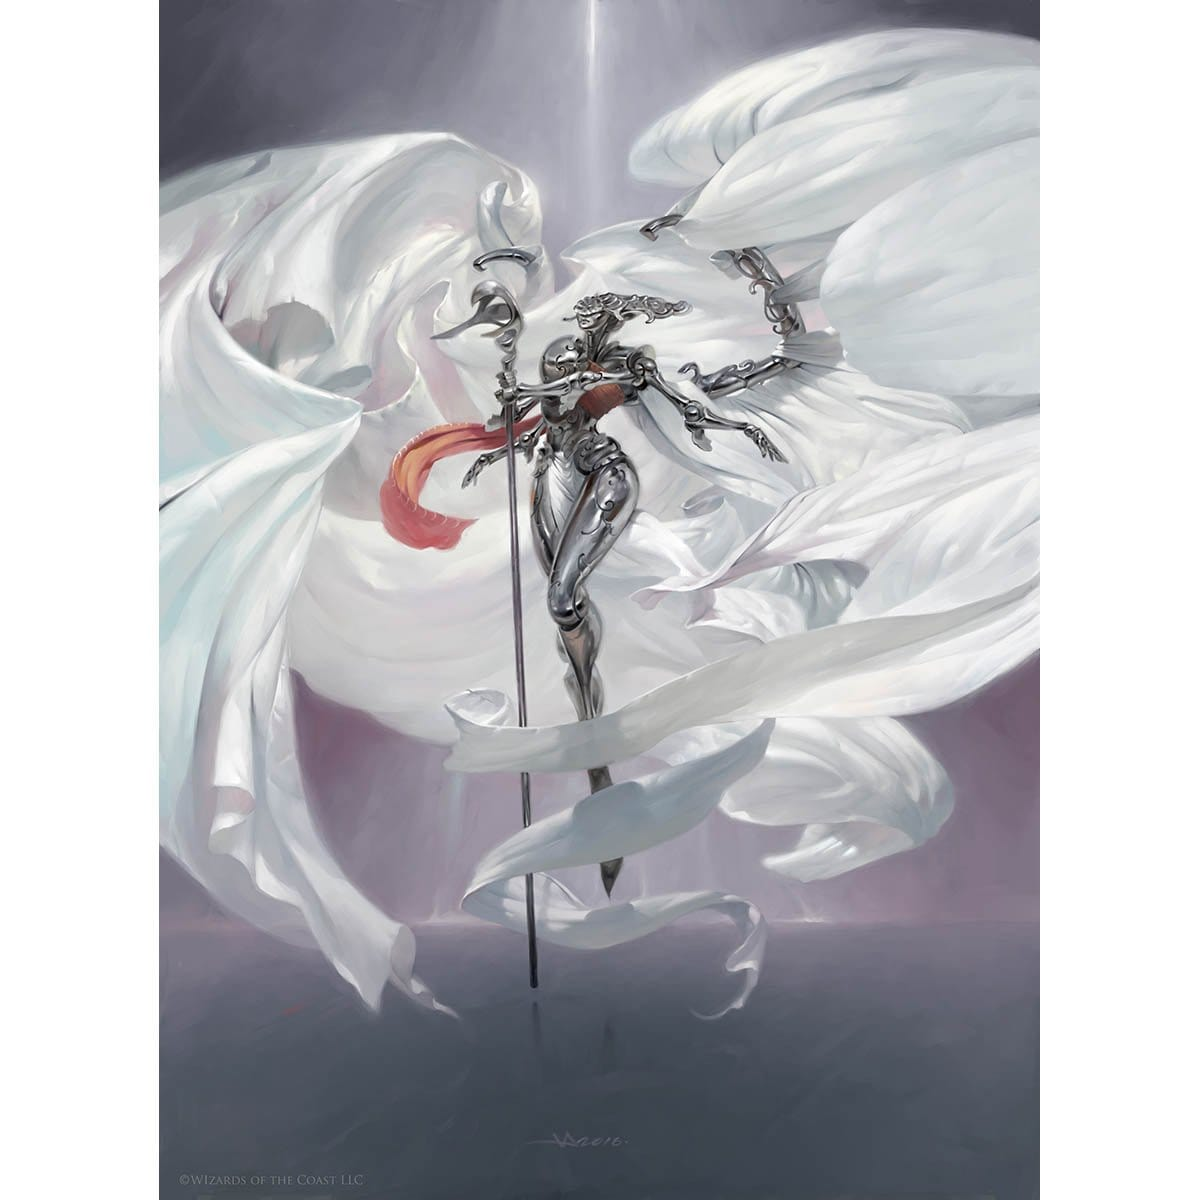 Platinum Angel Print - Print - Original Magic Art - Accessories for Magic the Gathering and other card games